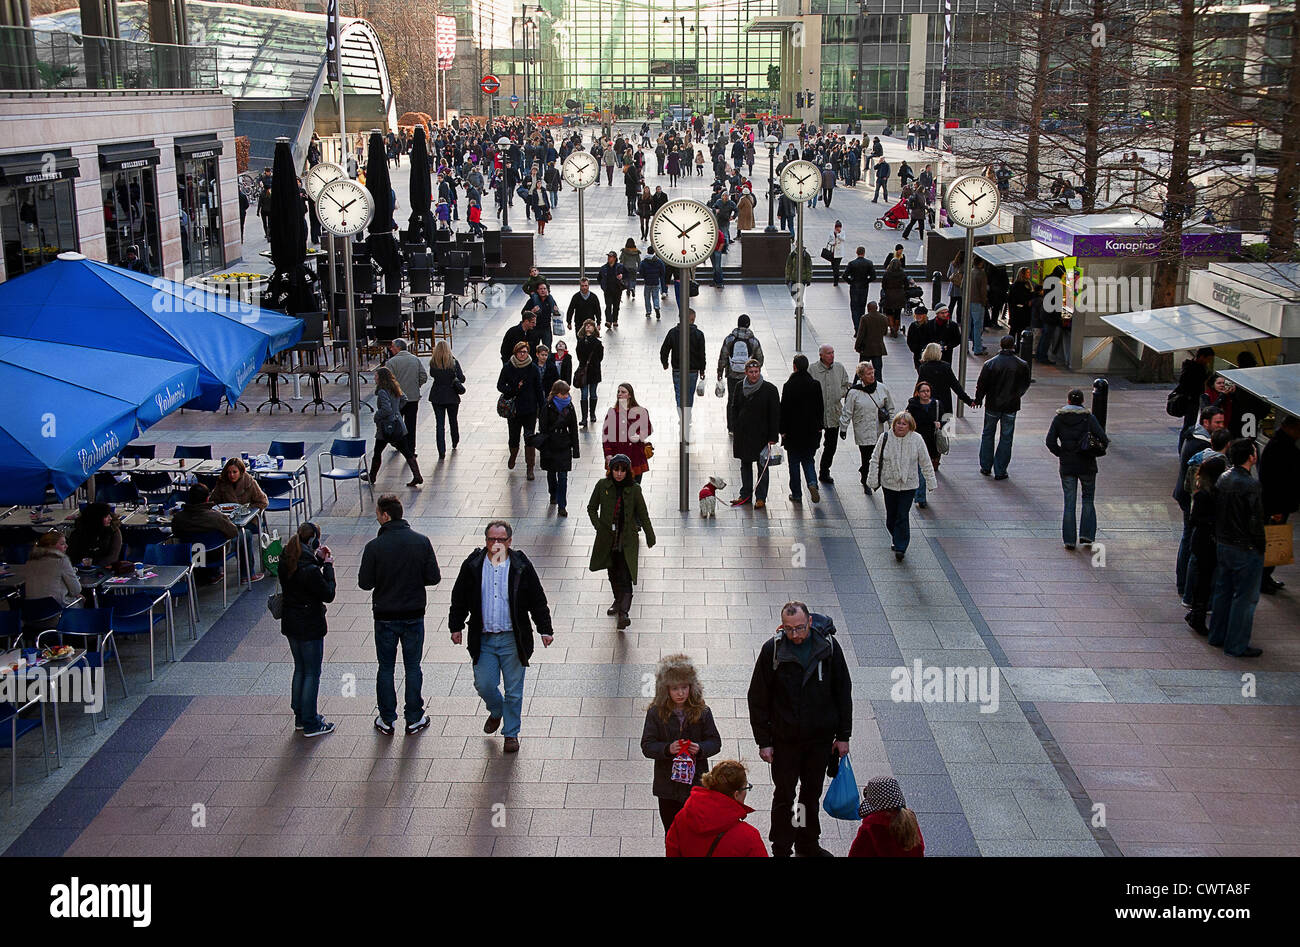 United Kingdom. England. London.Canary Wharf. Reuters Plaza in Canary Wharf. Crowds of people indoors. Stock Photo